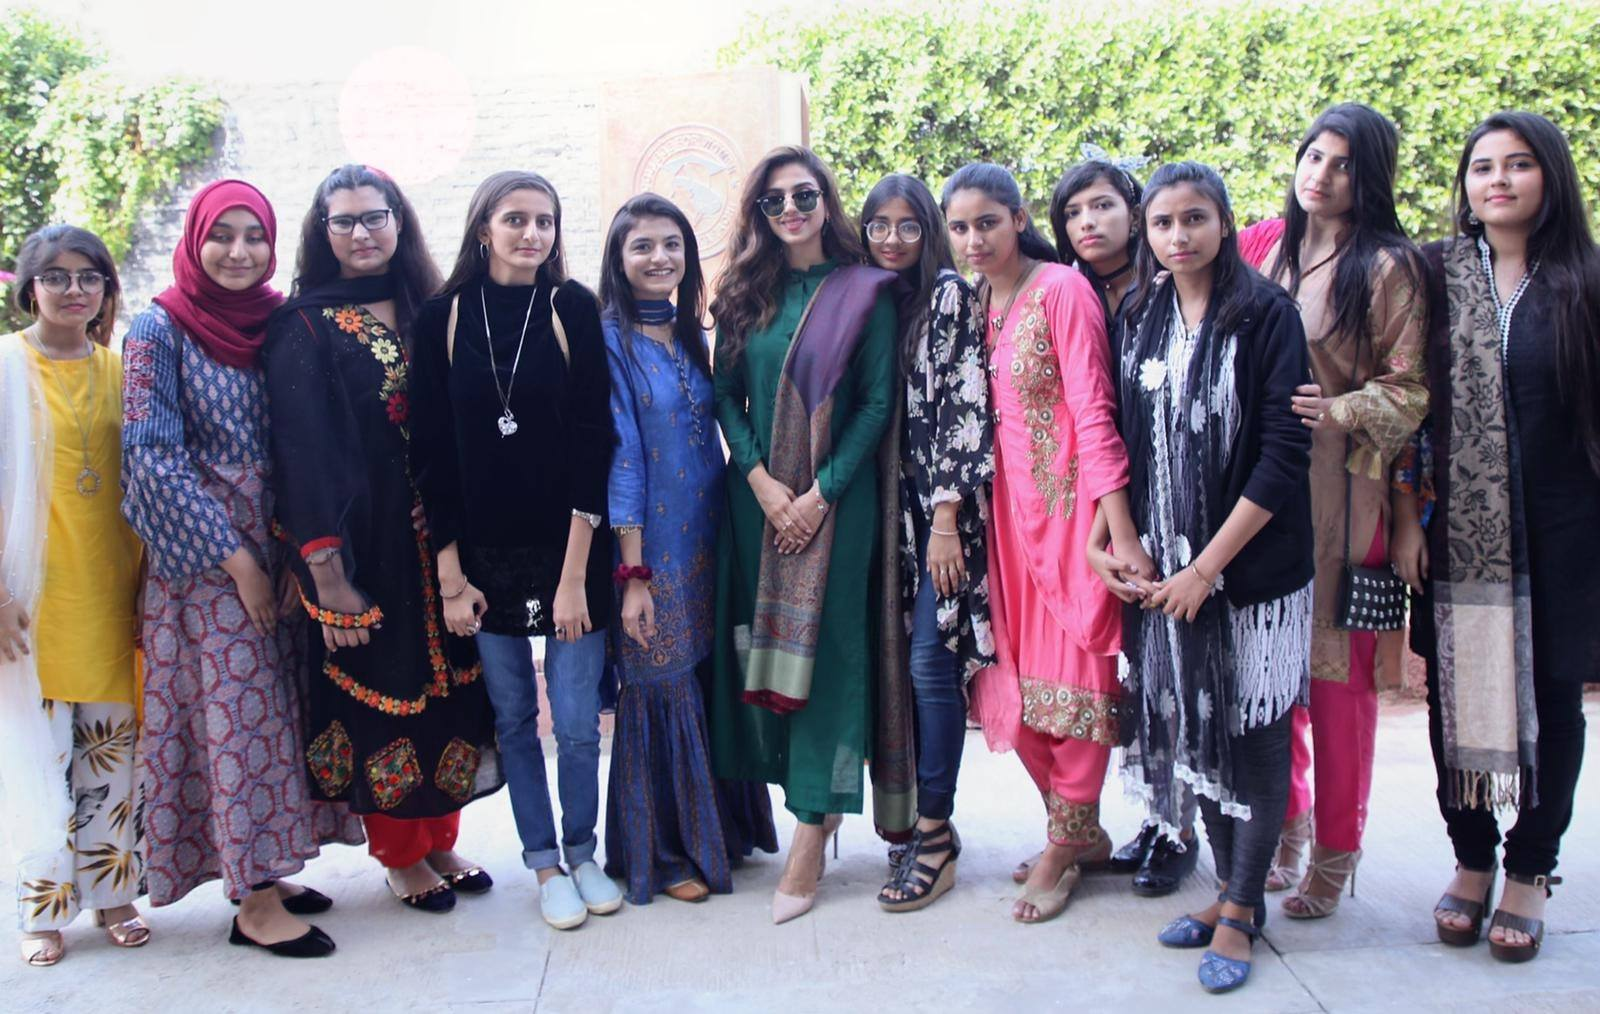 Actress Sonya Hussyn invited by An All Girls College as the Guest of Honor